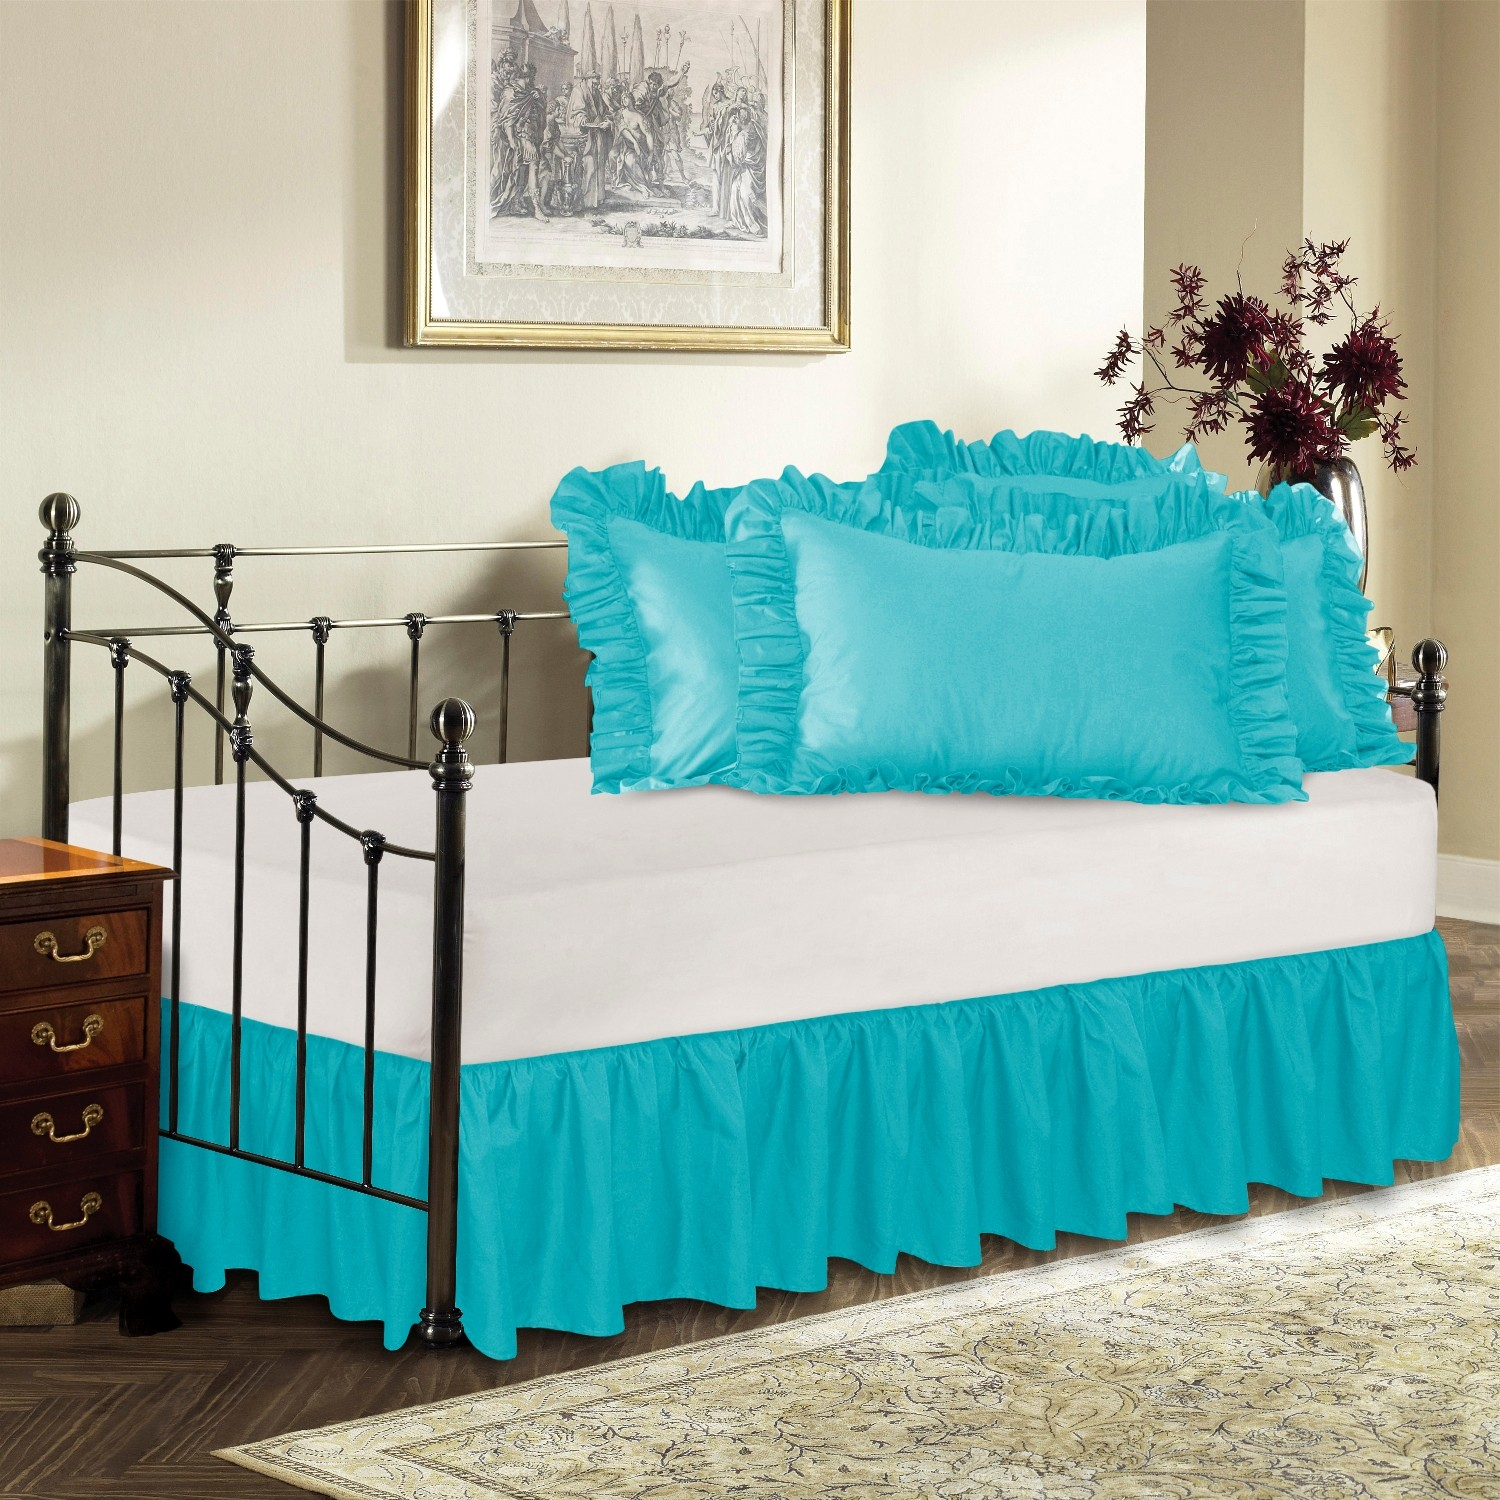 Split Corner Bedskirts Queen & King - Day Bed Ruffled Bed Skirt ShopBedding.com